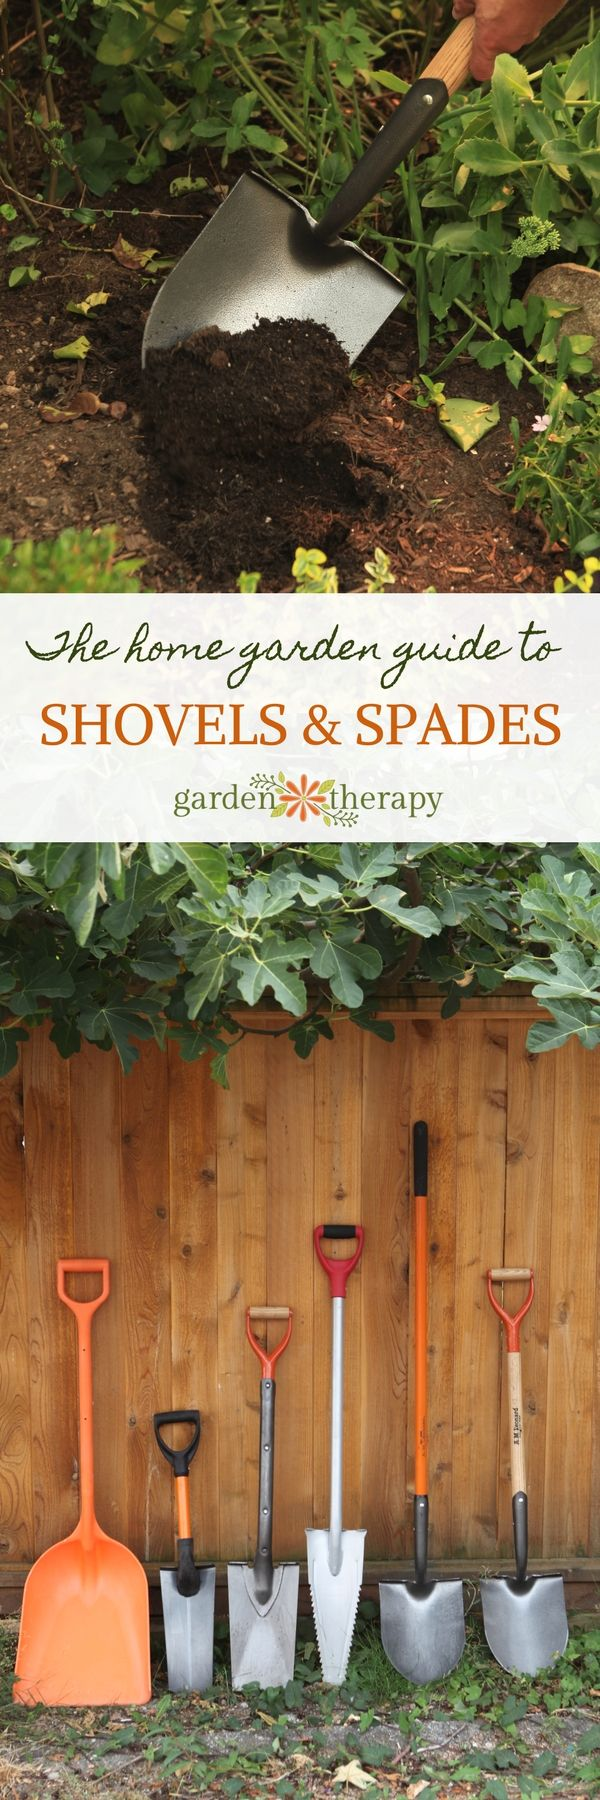 The Home Garden Guide to Shovels and Spades